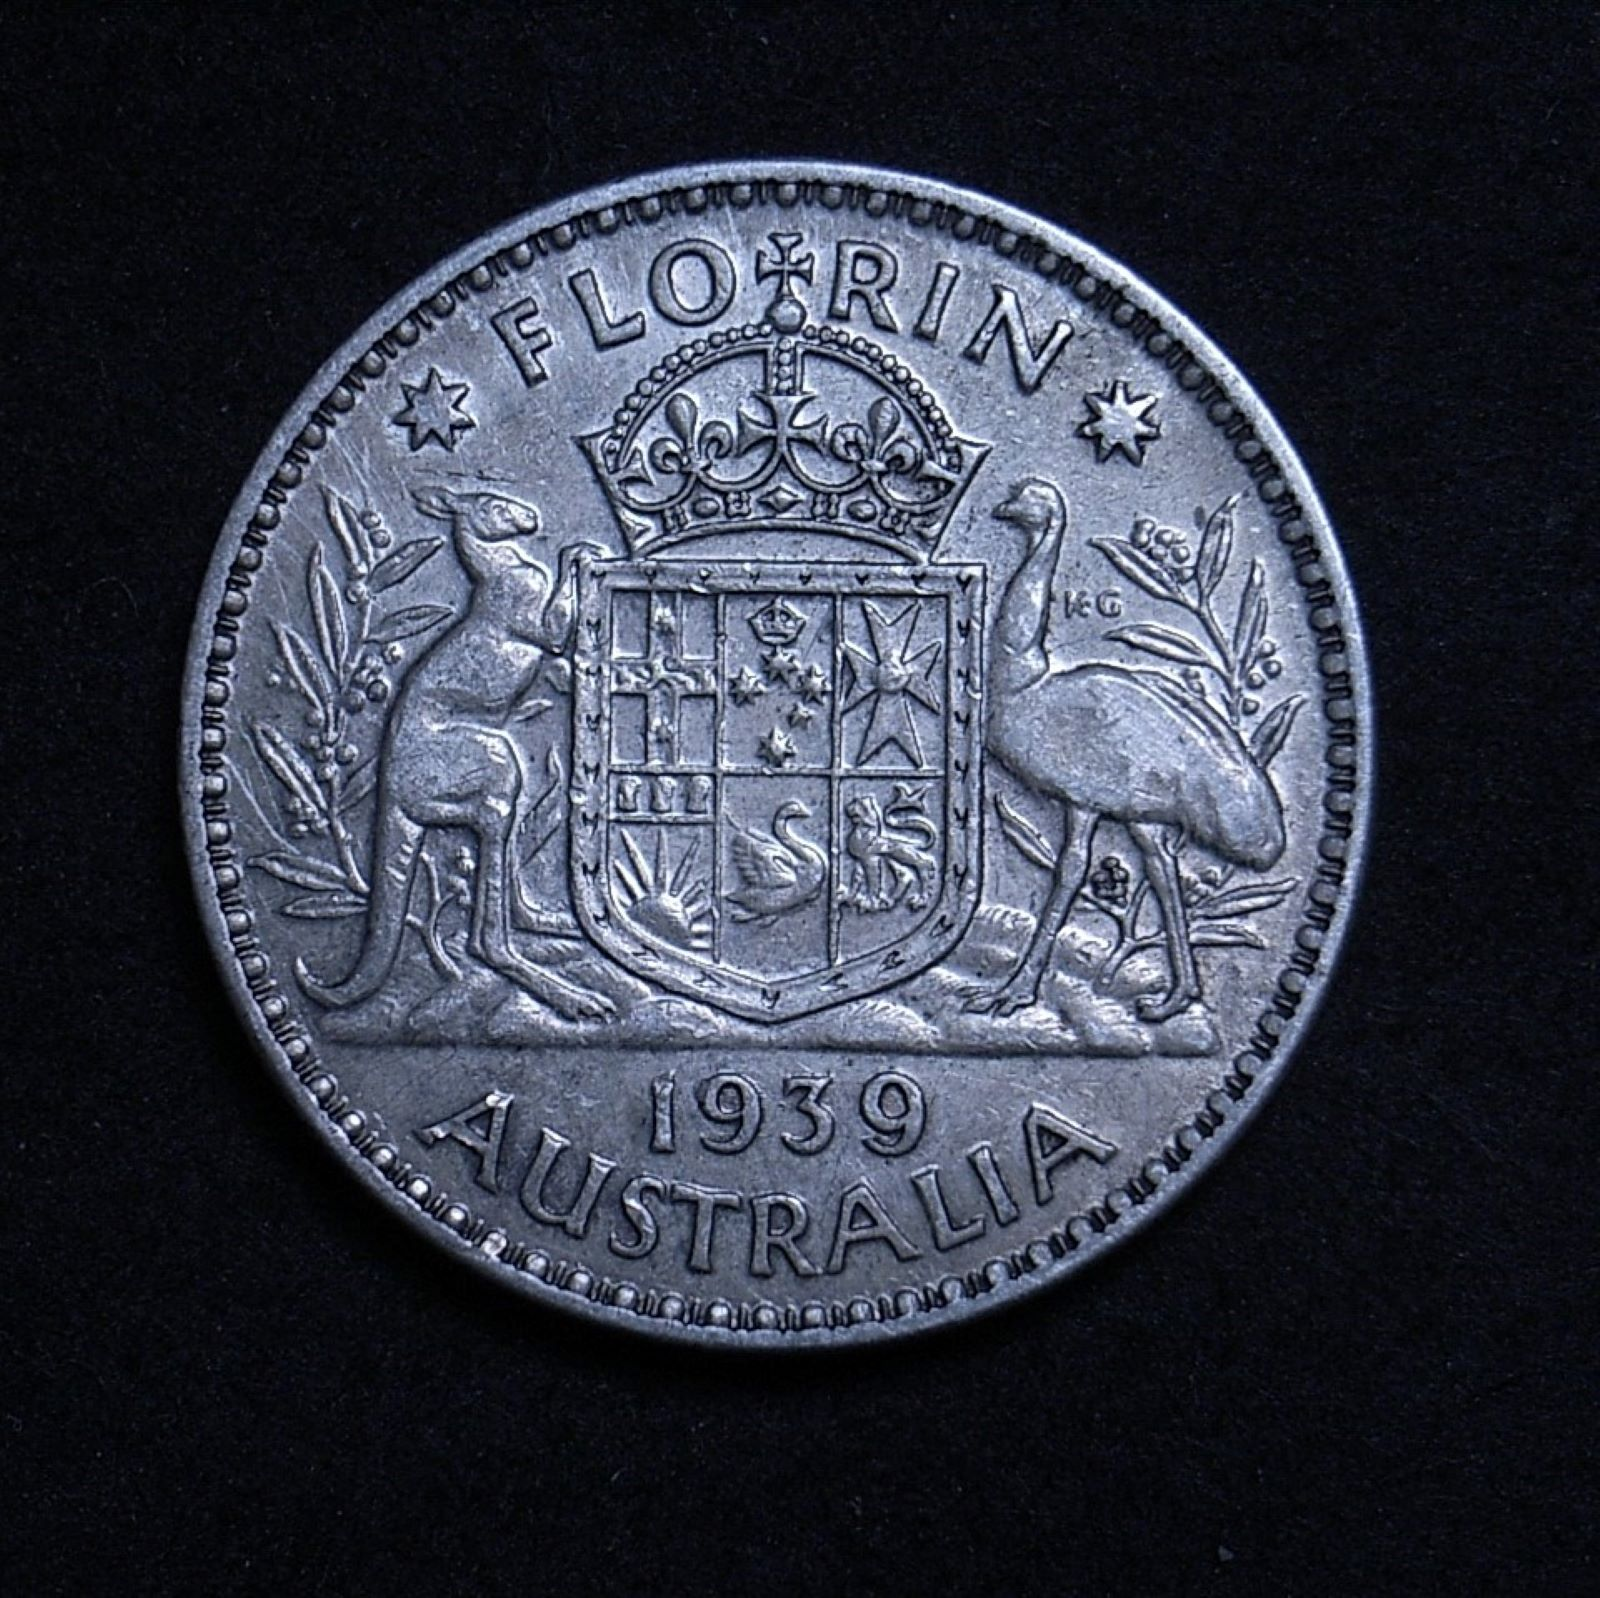 Close up of 1939 florin reverse showing the coin's detail